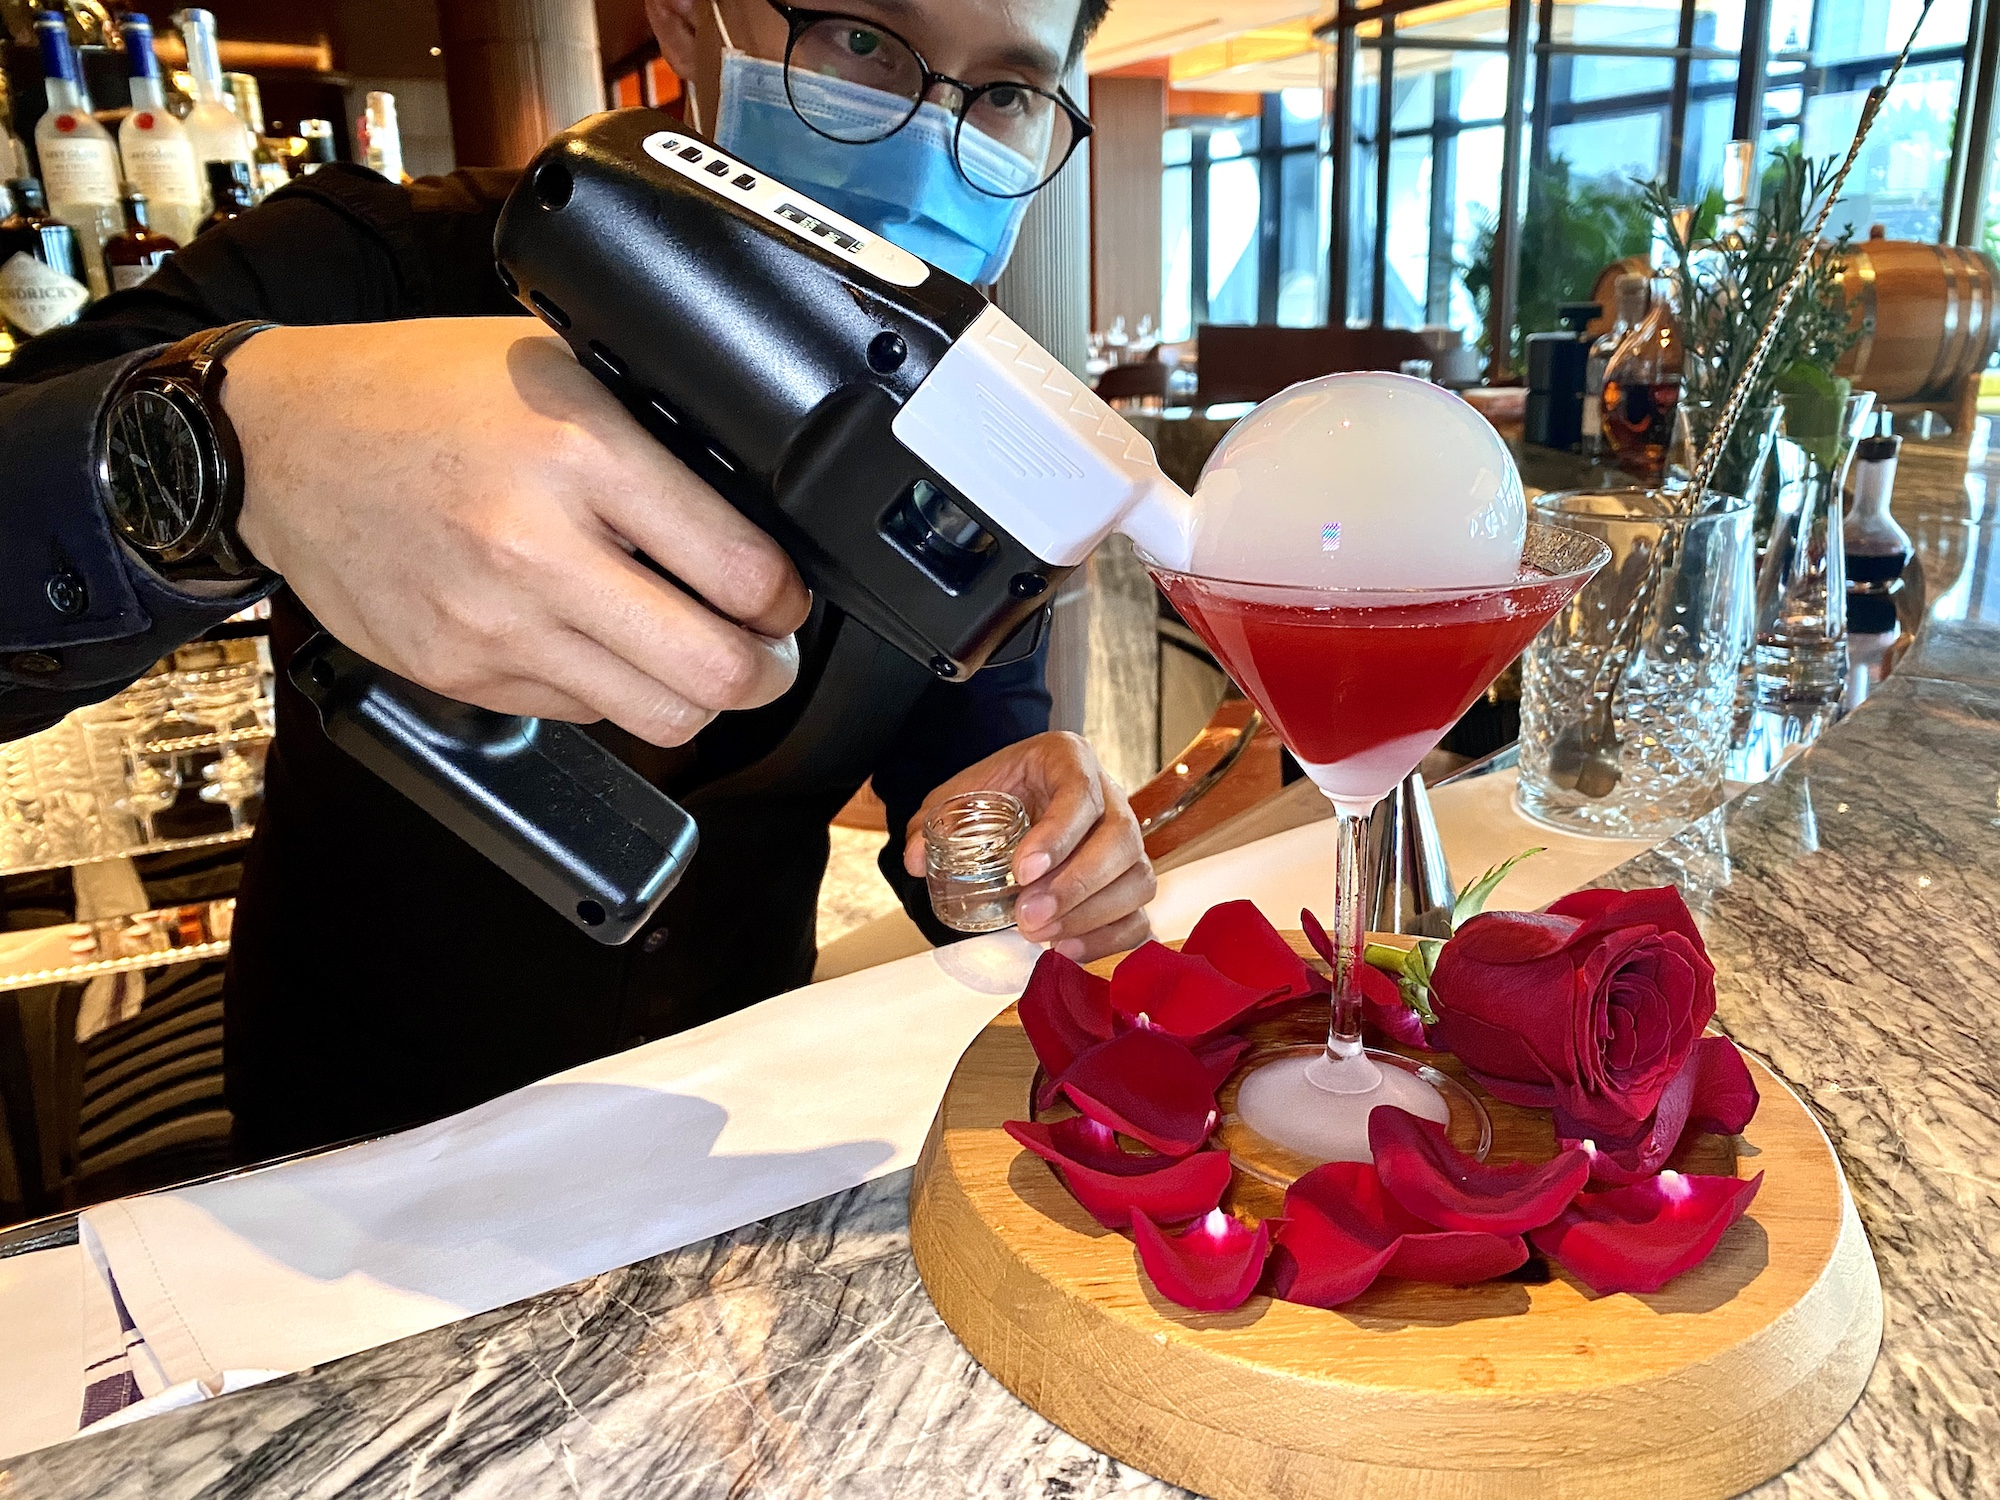 voyages by alain ducasse bar guns and roses